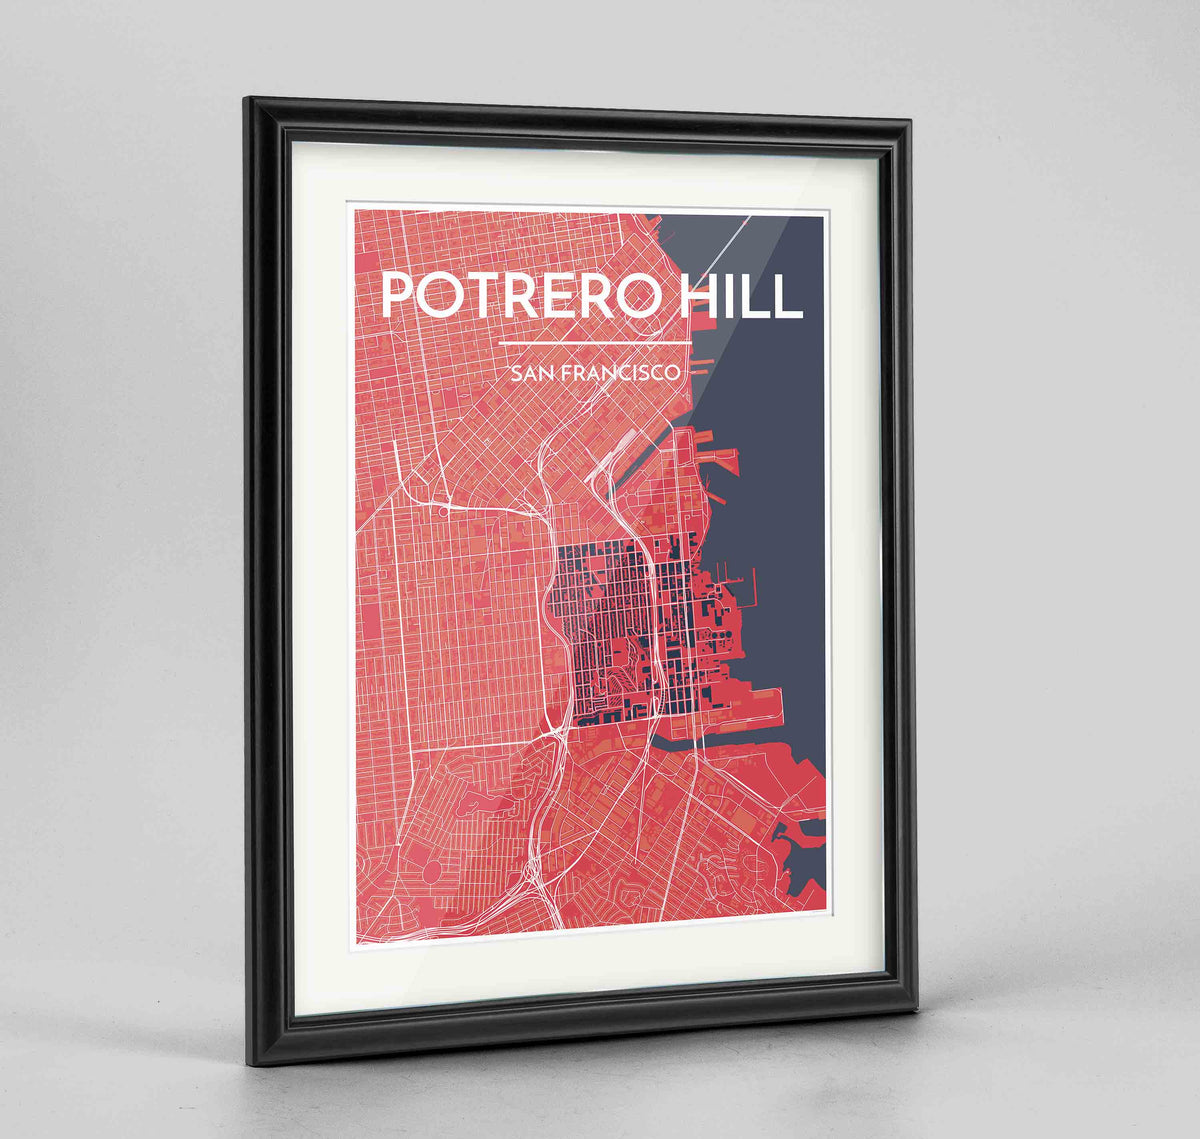 "Framed Potrero Hill San Francisco Map Art Print 24x36"" Traditional Black frame Point Two Design Group"